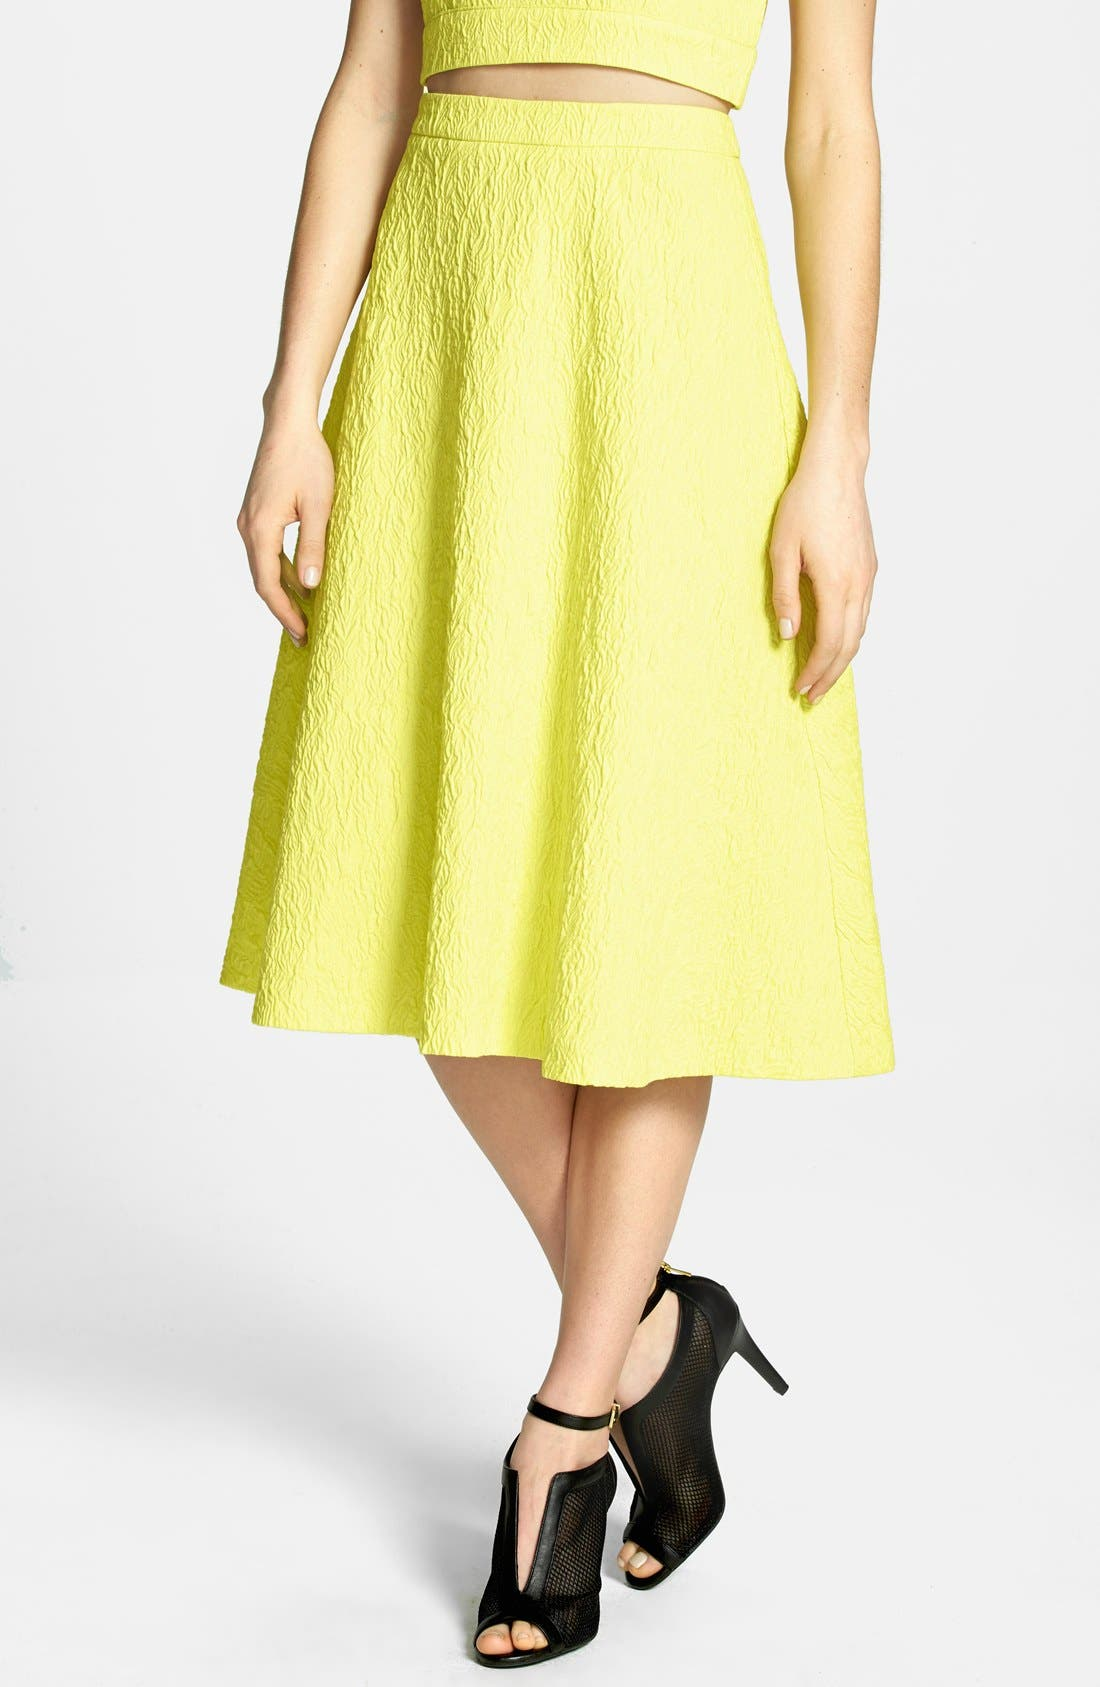 JOA Textured A-Line Midi Skirt,                             Main thumbnail 1, color,                             725